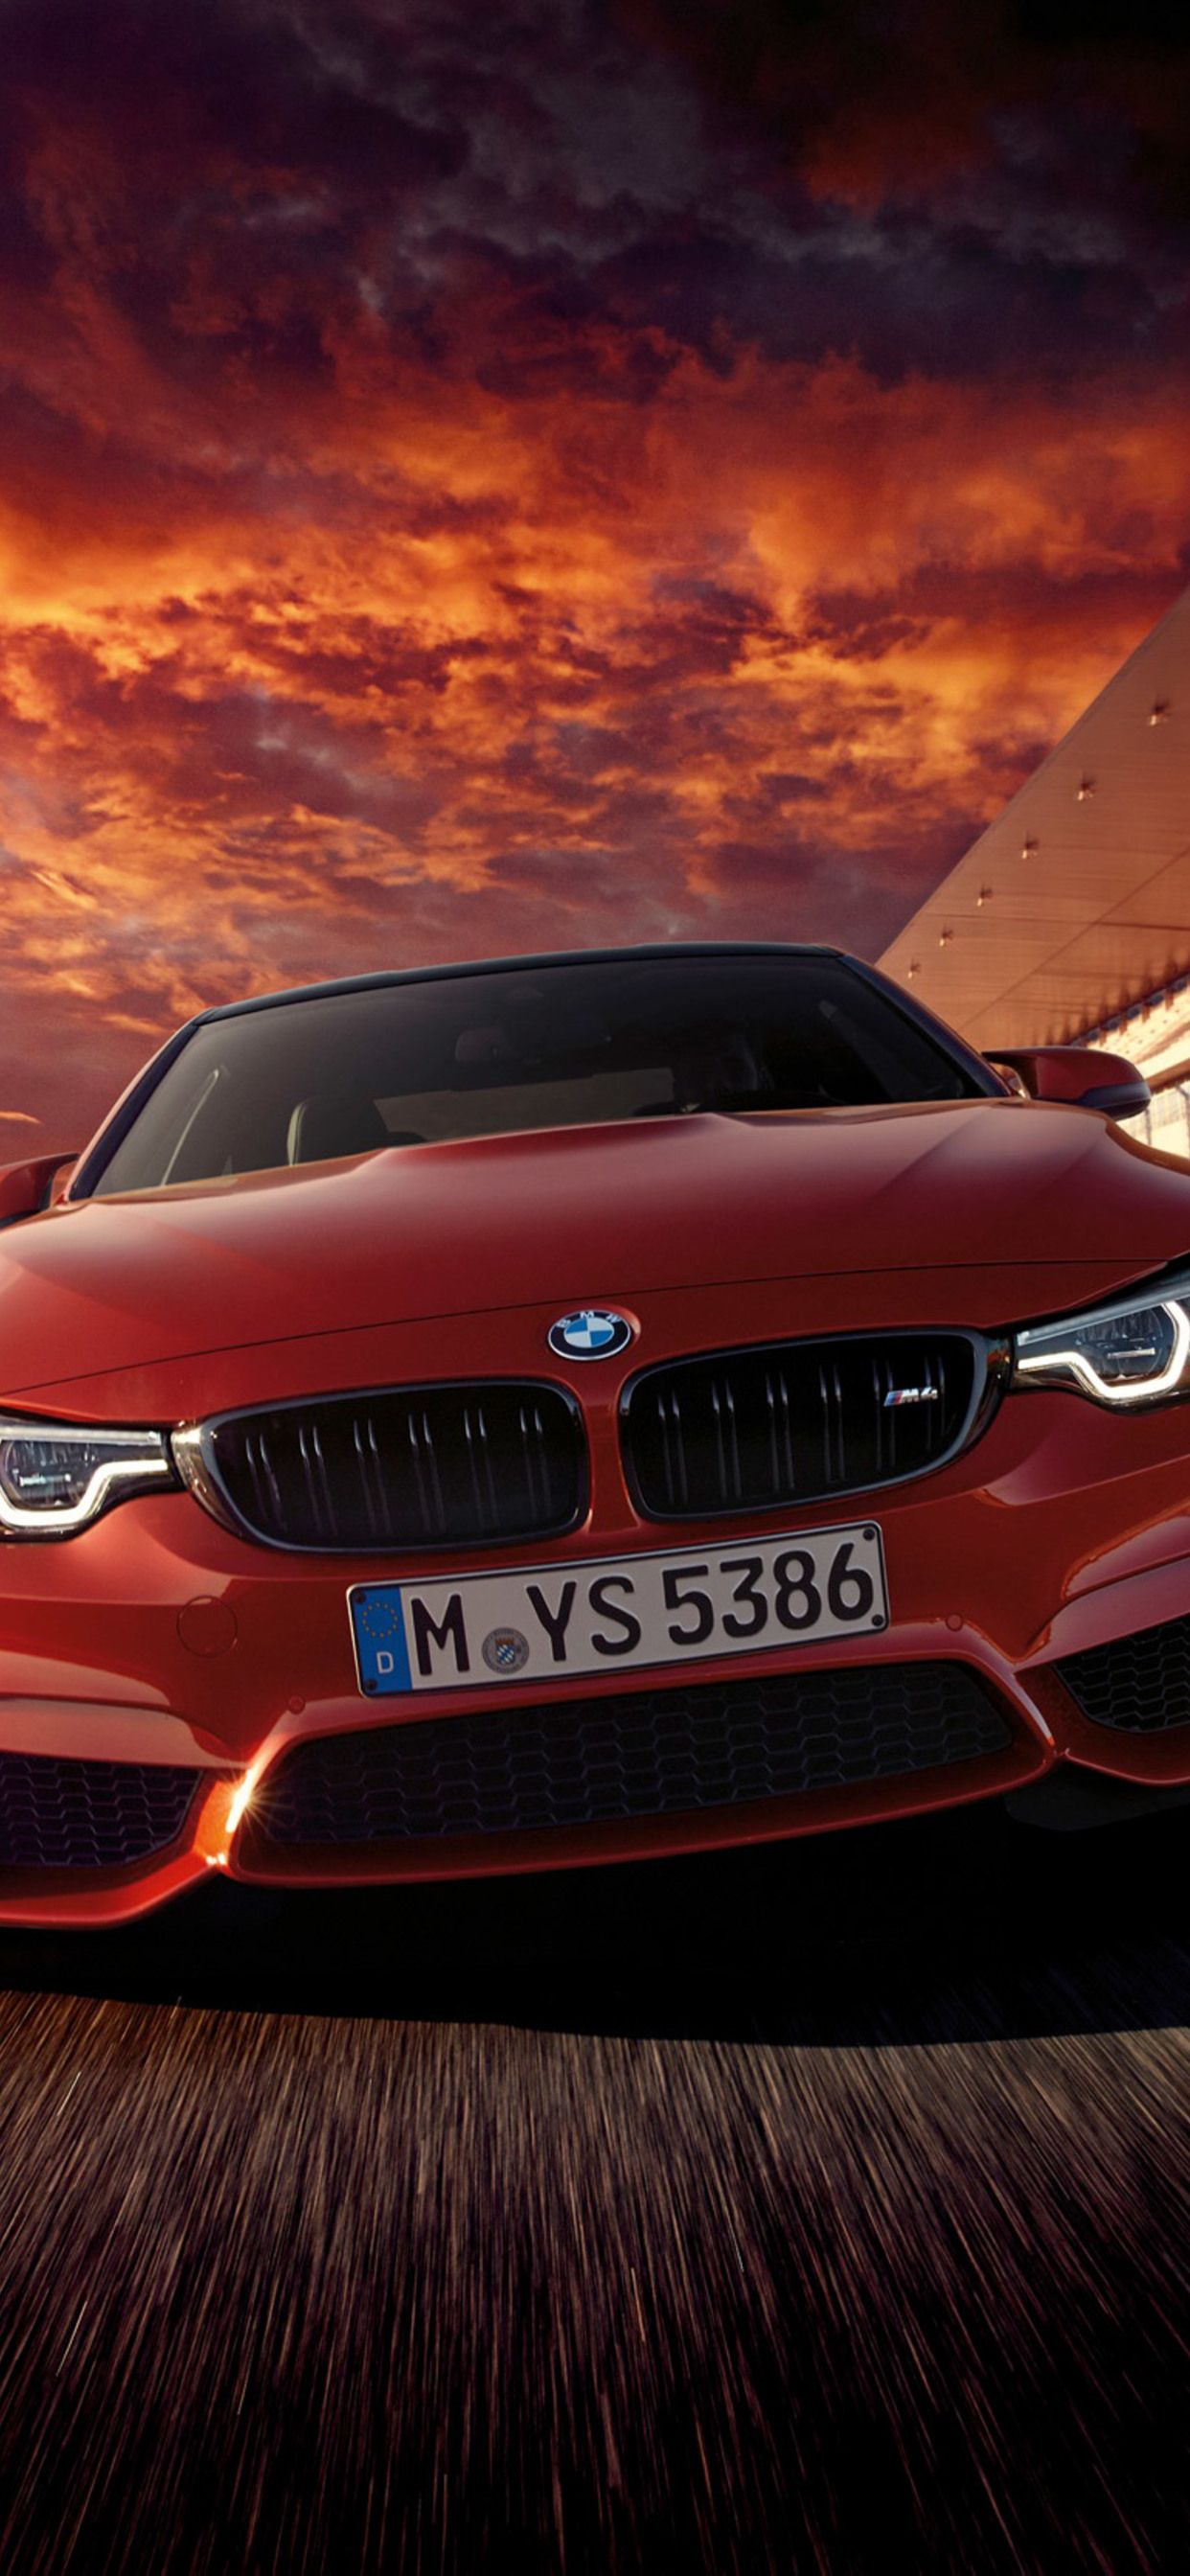 Iphone Xs Max Bmw Wallpaper : iphone, wallpaper, Download, Wallpaper, Iphone, Wallpapers,